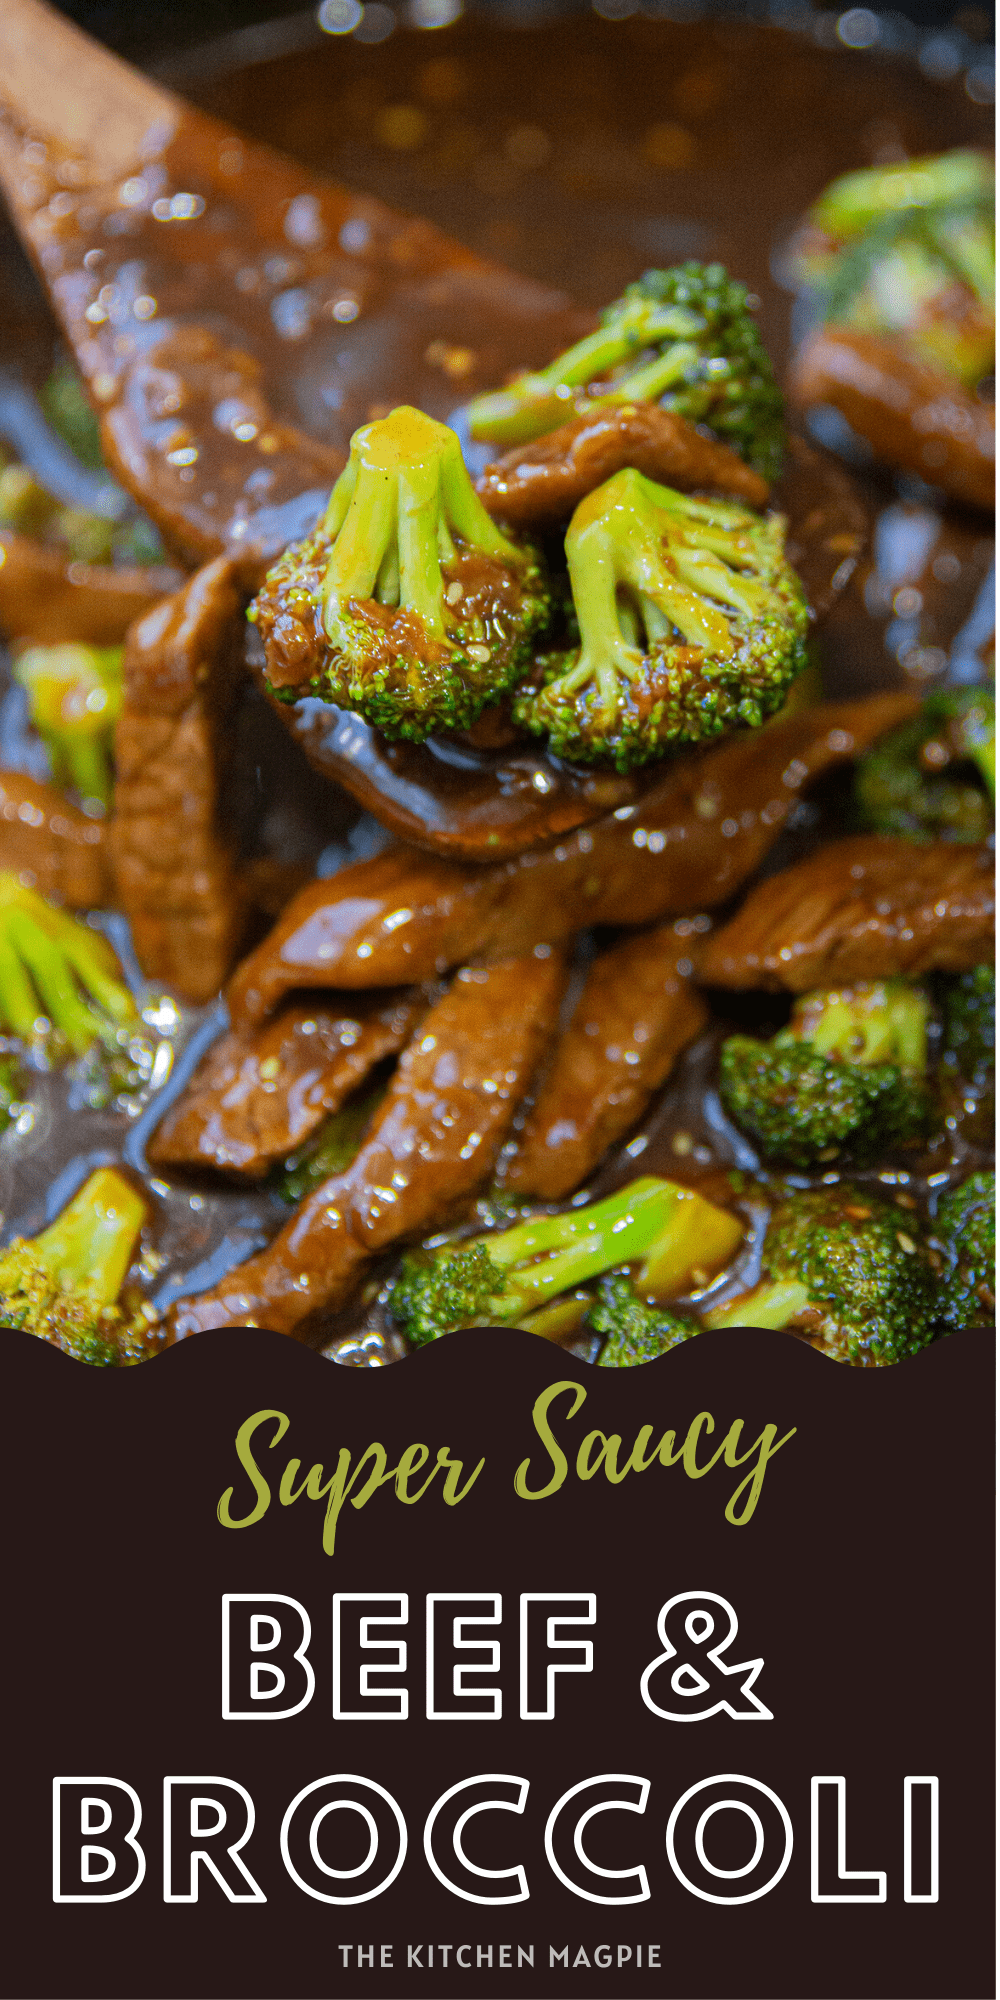 This delicious beef and broccoli dinner is made in mere minutes, lots of extra homemade stir fry sauce and fresh broccoli! ! Serve over rice for the perfect healthy dinner!